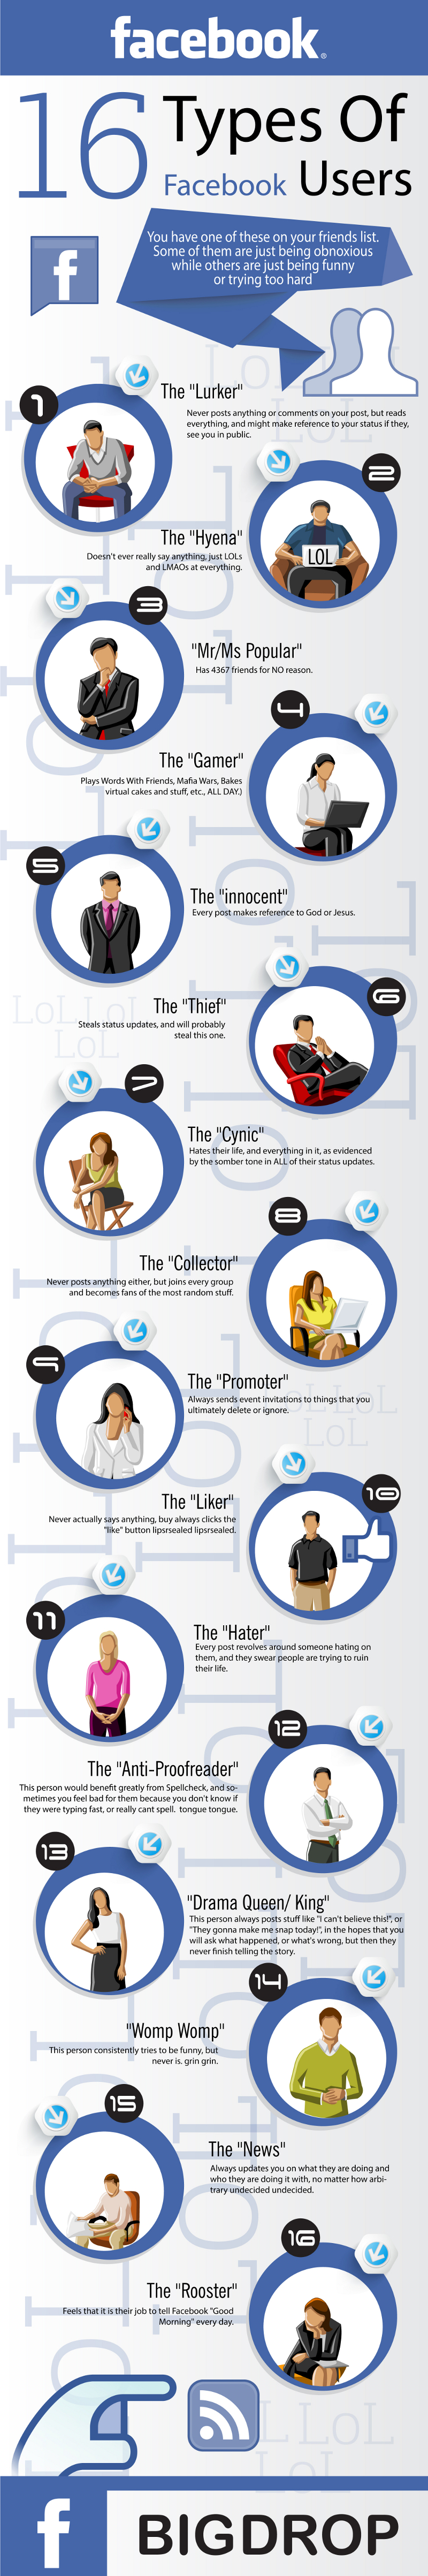 Types-of-Facebook-Users